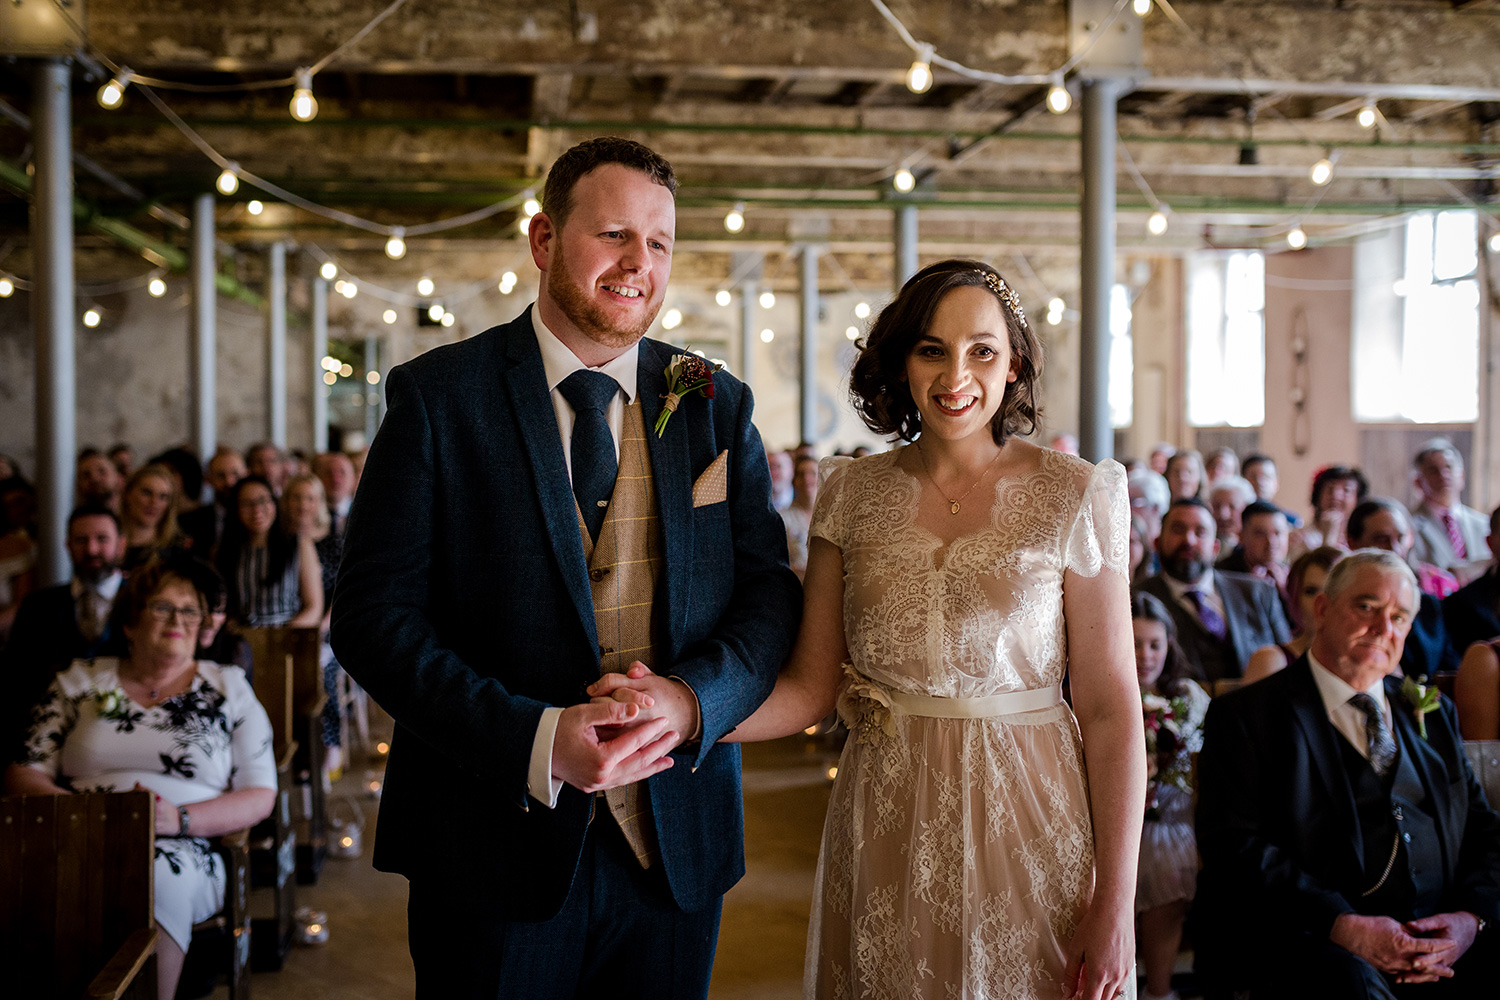 The wedding ceremony at holmes mill in Clitheroe